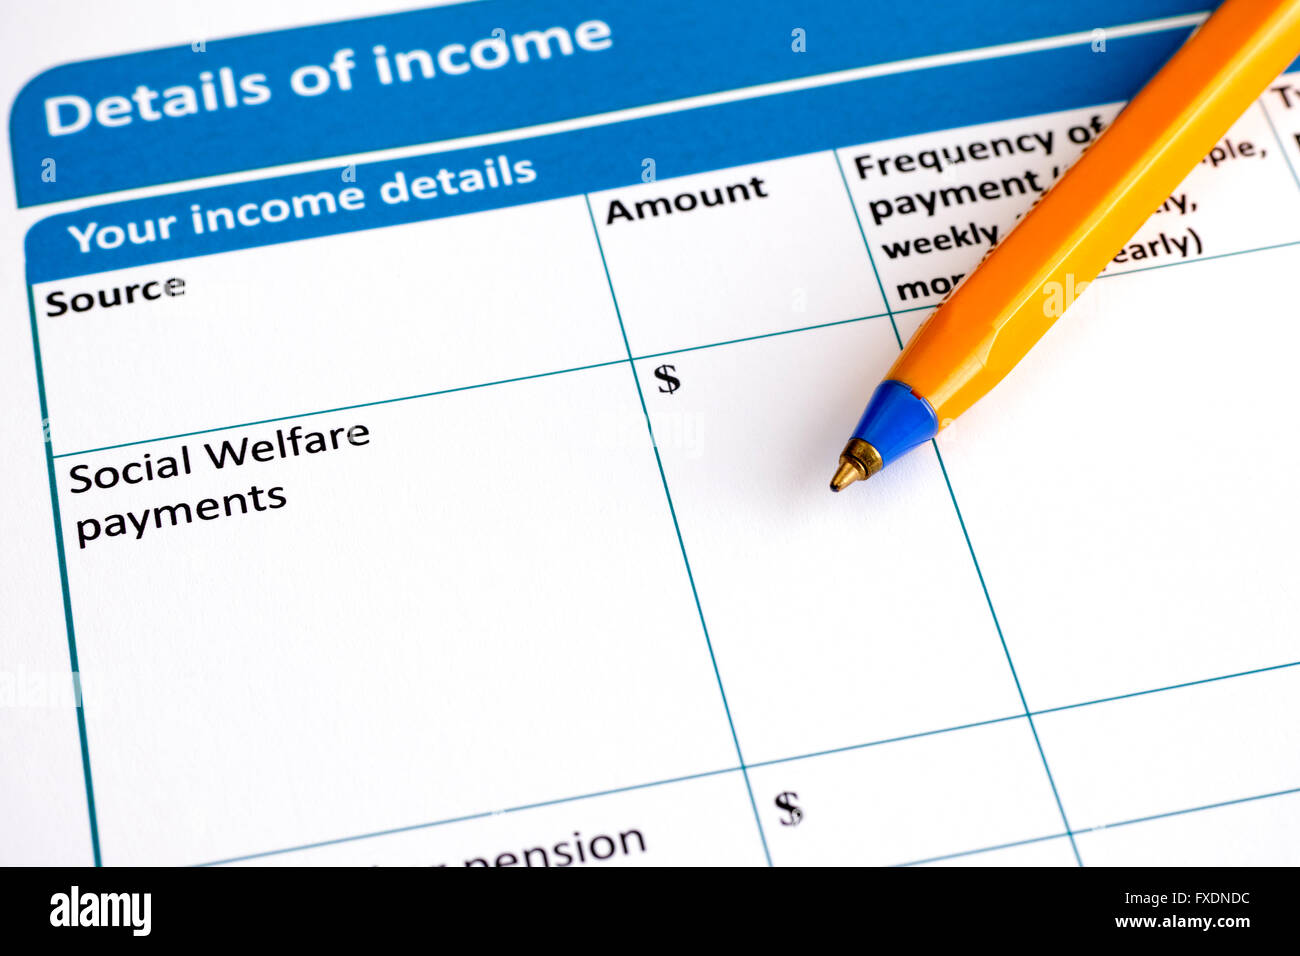 Details of income application form with ballpoint pen. Stock Photo